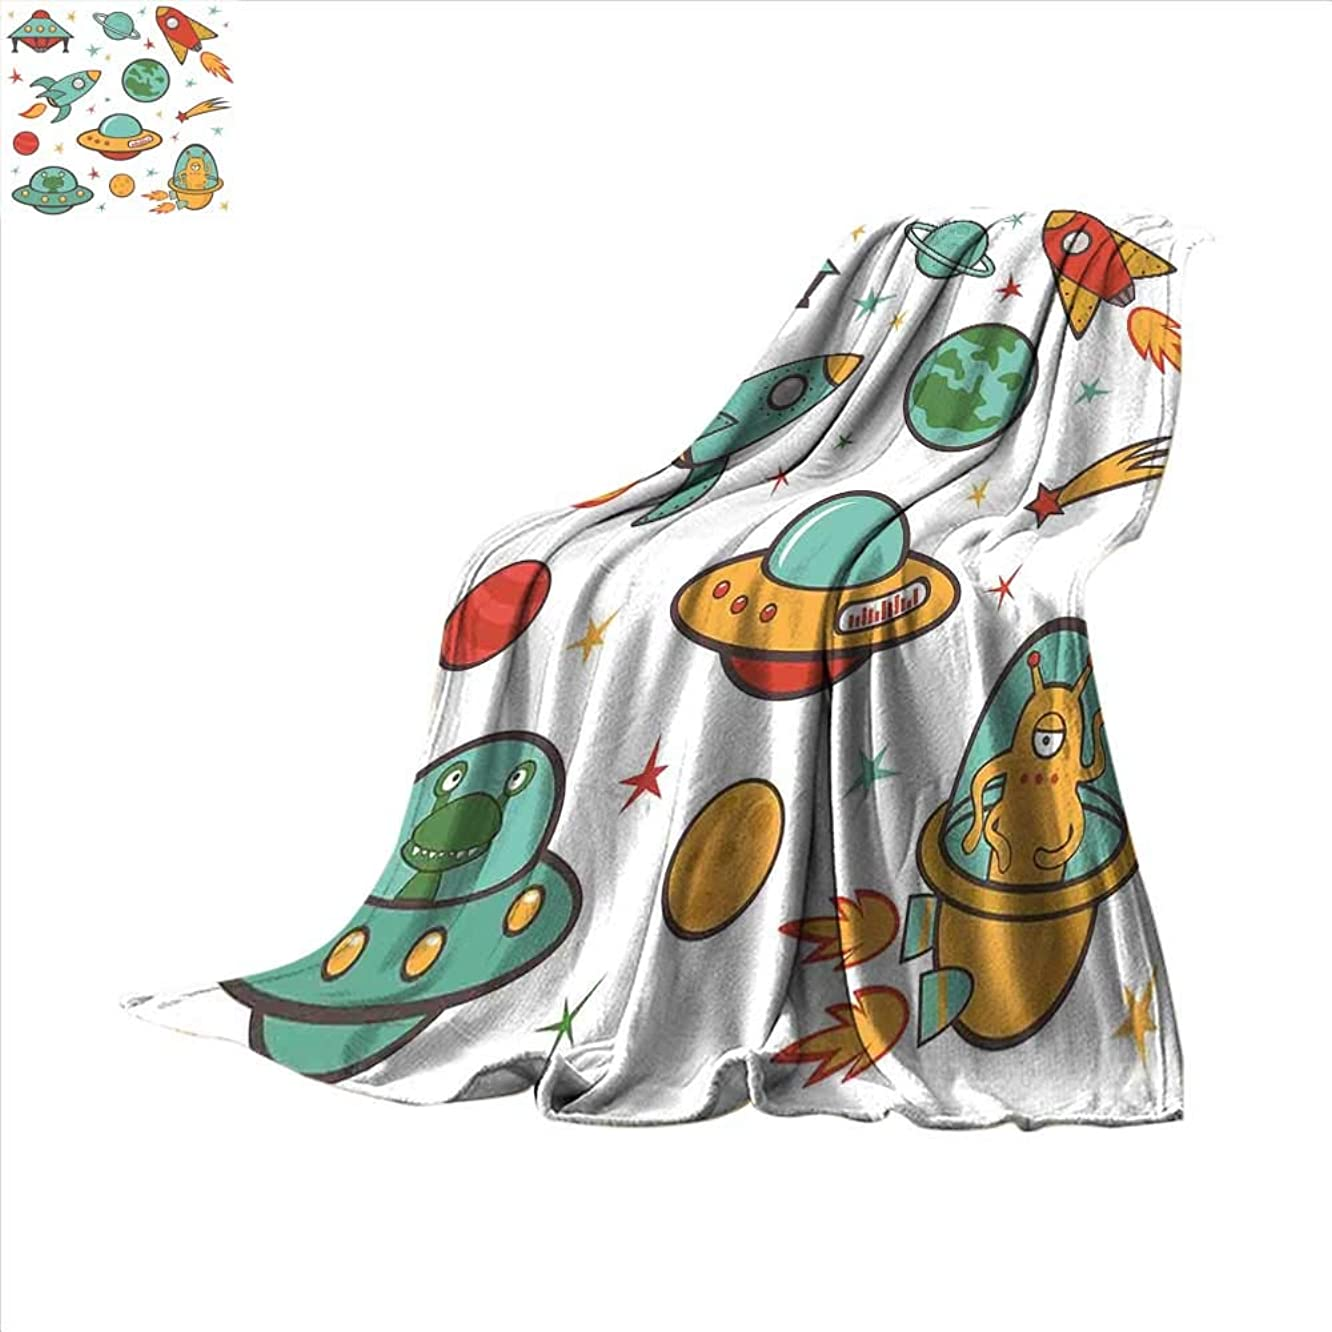 smallbeefly Kids Room Digital Printing Blanket Outer Space Theme Rocket Space Ship UFO Stars Planets Alien Earth Saturn Galaxy Print Summer Quilt Comforter 62